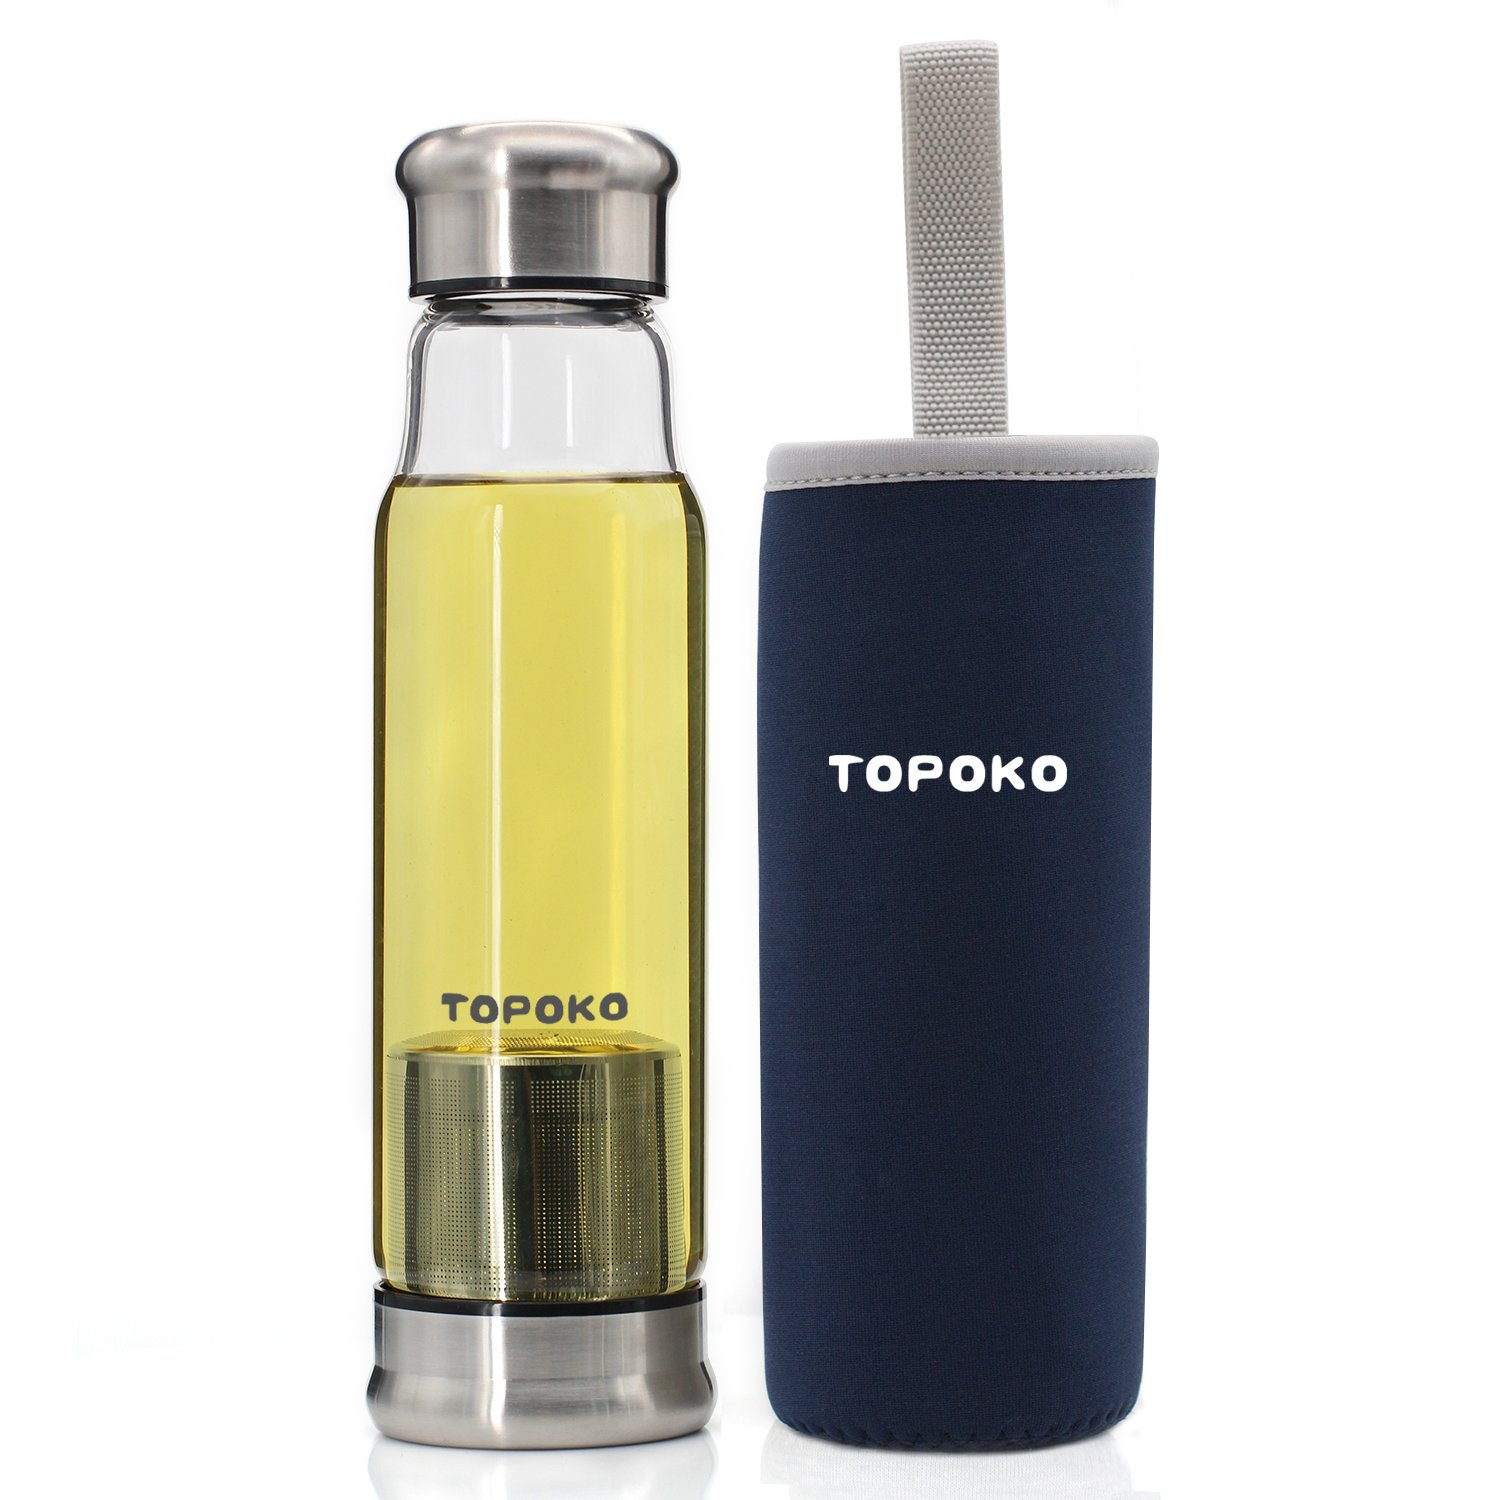 TOPOKO 18.5 Oz Glass Tea Infuser Travel Mug with Strainer and Nylon Sleeve. Borosilicate Glass Bottle for Loose Leaf Tea, Cold Brew Coffee, Fruit. Tea Cup with Stainless Steel Mesh Filter. (Blue)